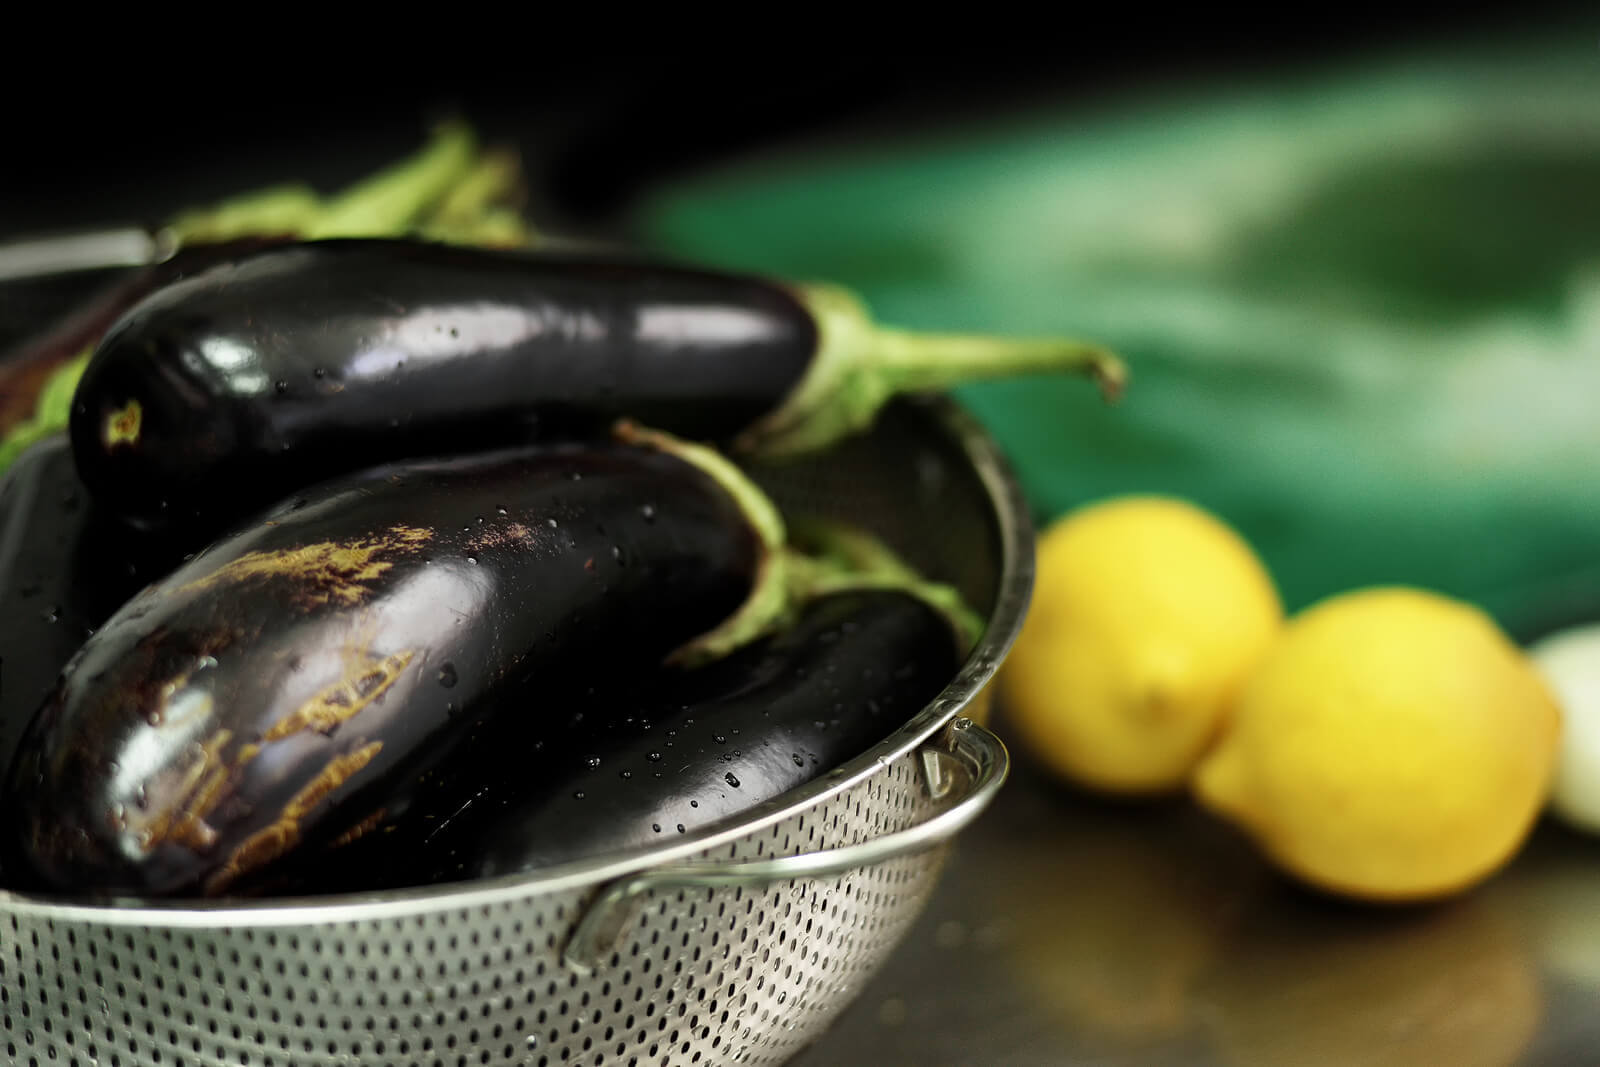 Whole eggplants in a strainer, with whole lemons in the background.